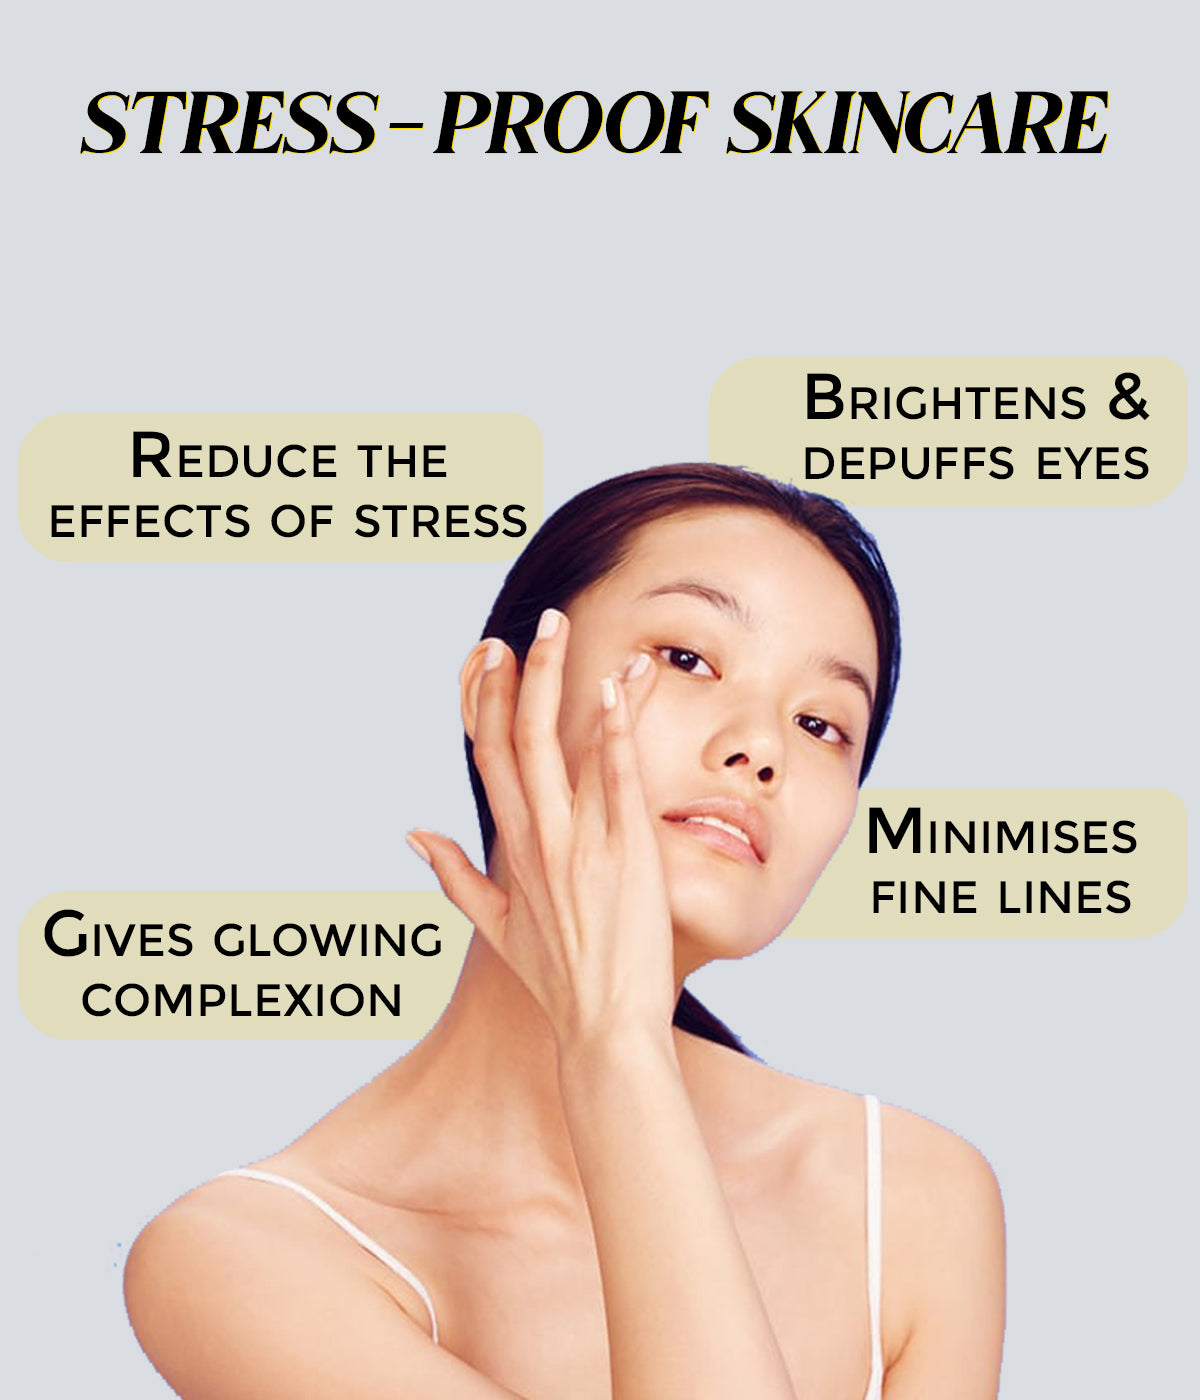 This is an image of stress proof skincare being a skincare trend in 2021